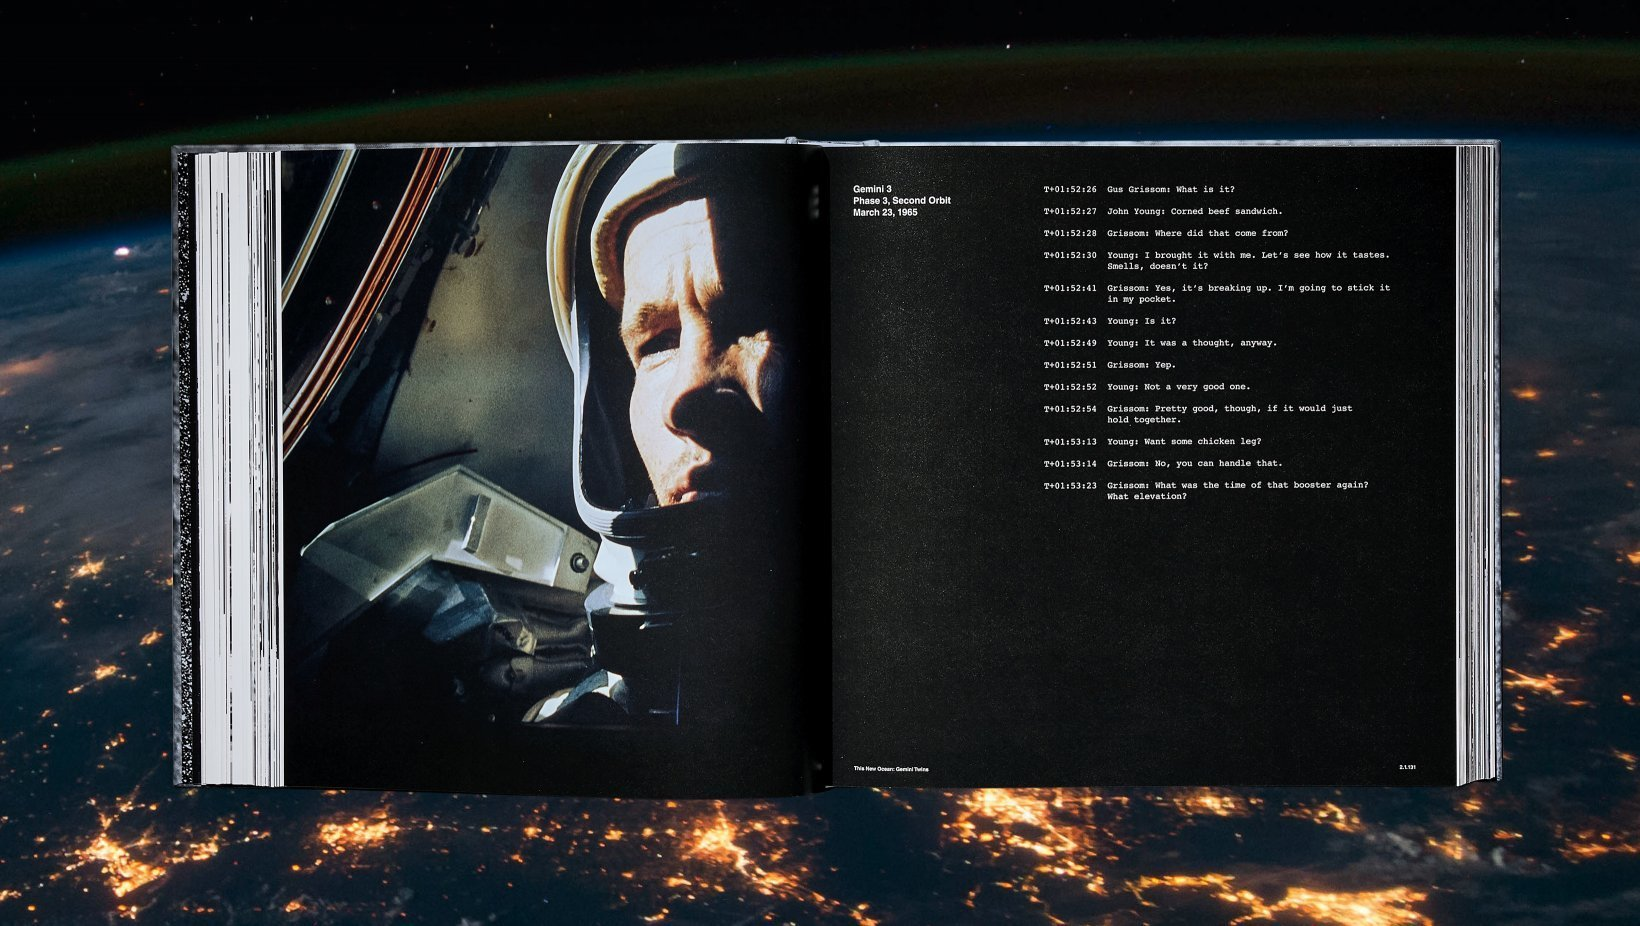 c42dbd75f8827 60 Years in space with NASA in an awesome 468 pages Taschen book 2019